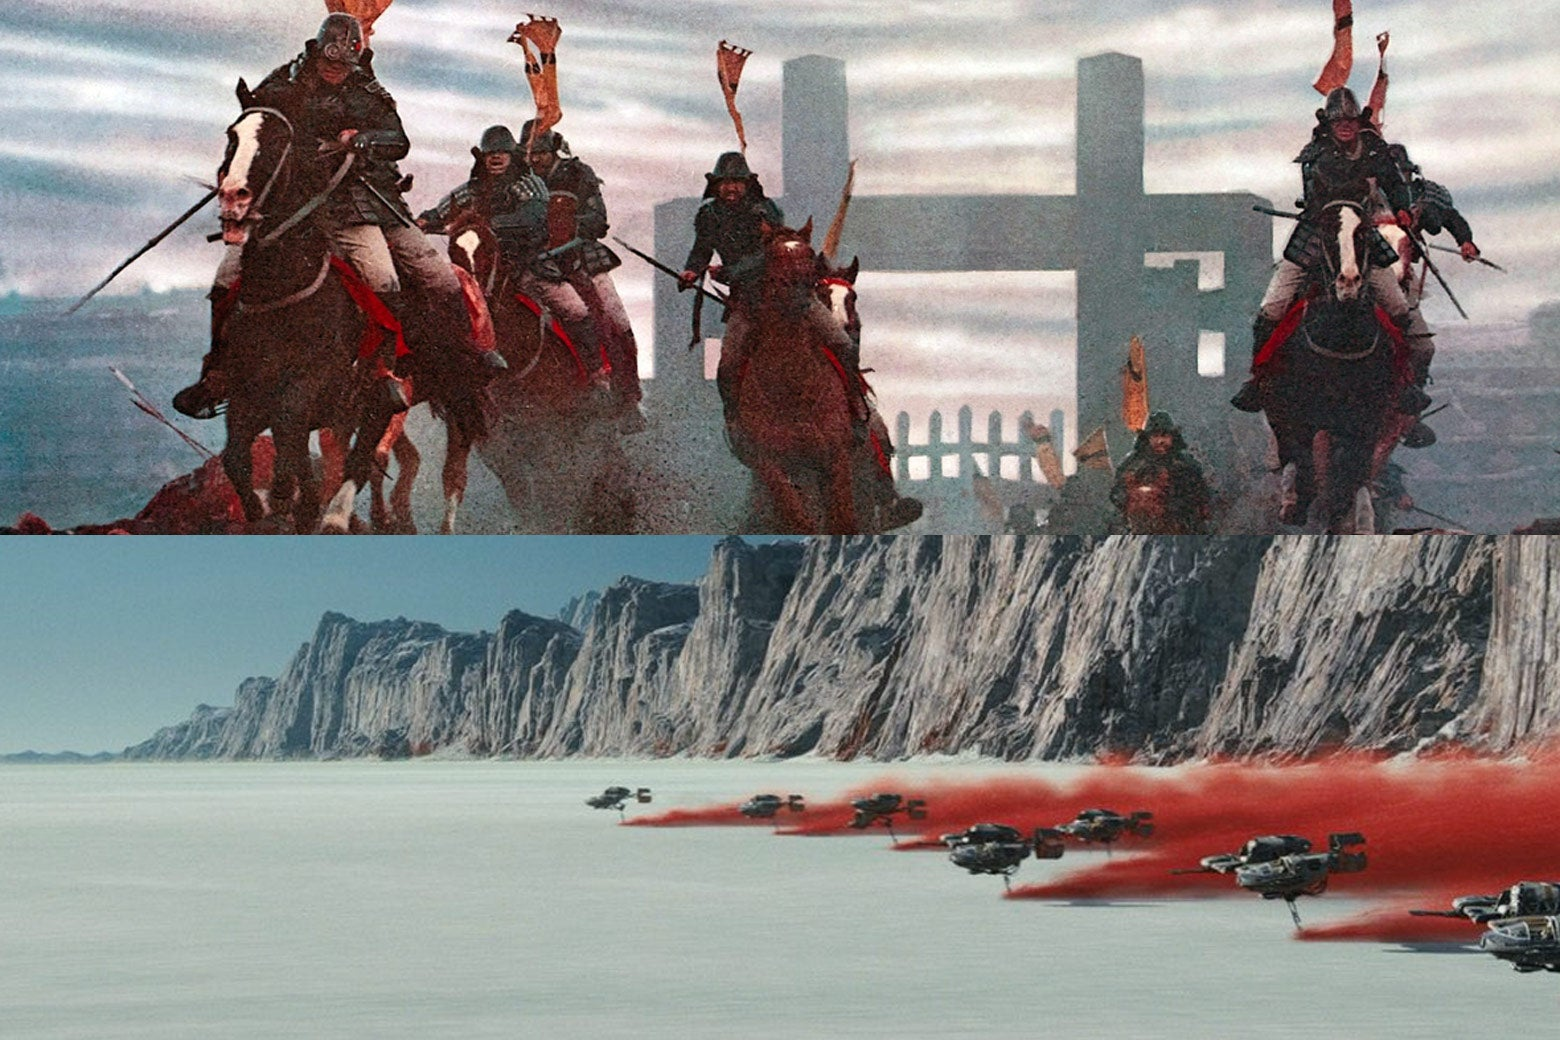 The Last Jedi borrows from the films of Akira Kurosawa—especially, in the final battle sequence, Ran.